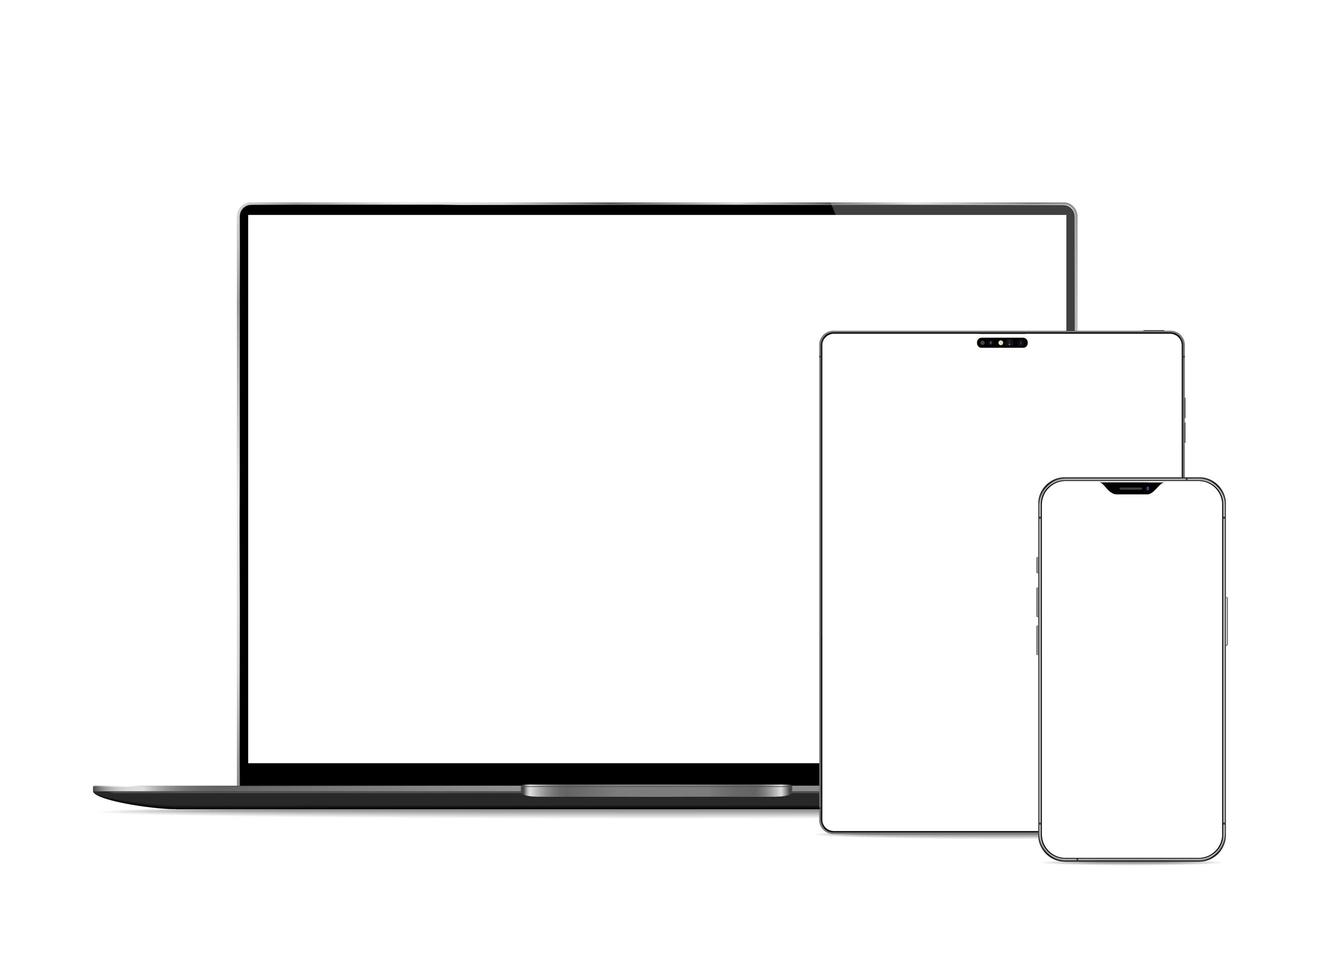 Laptop, Tablet and Phone Set with Blank Screens vector